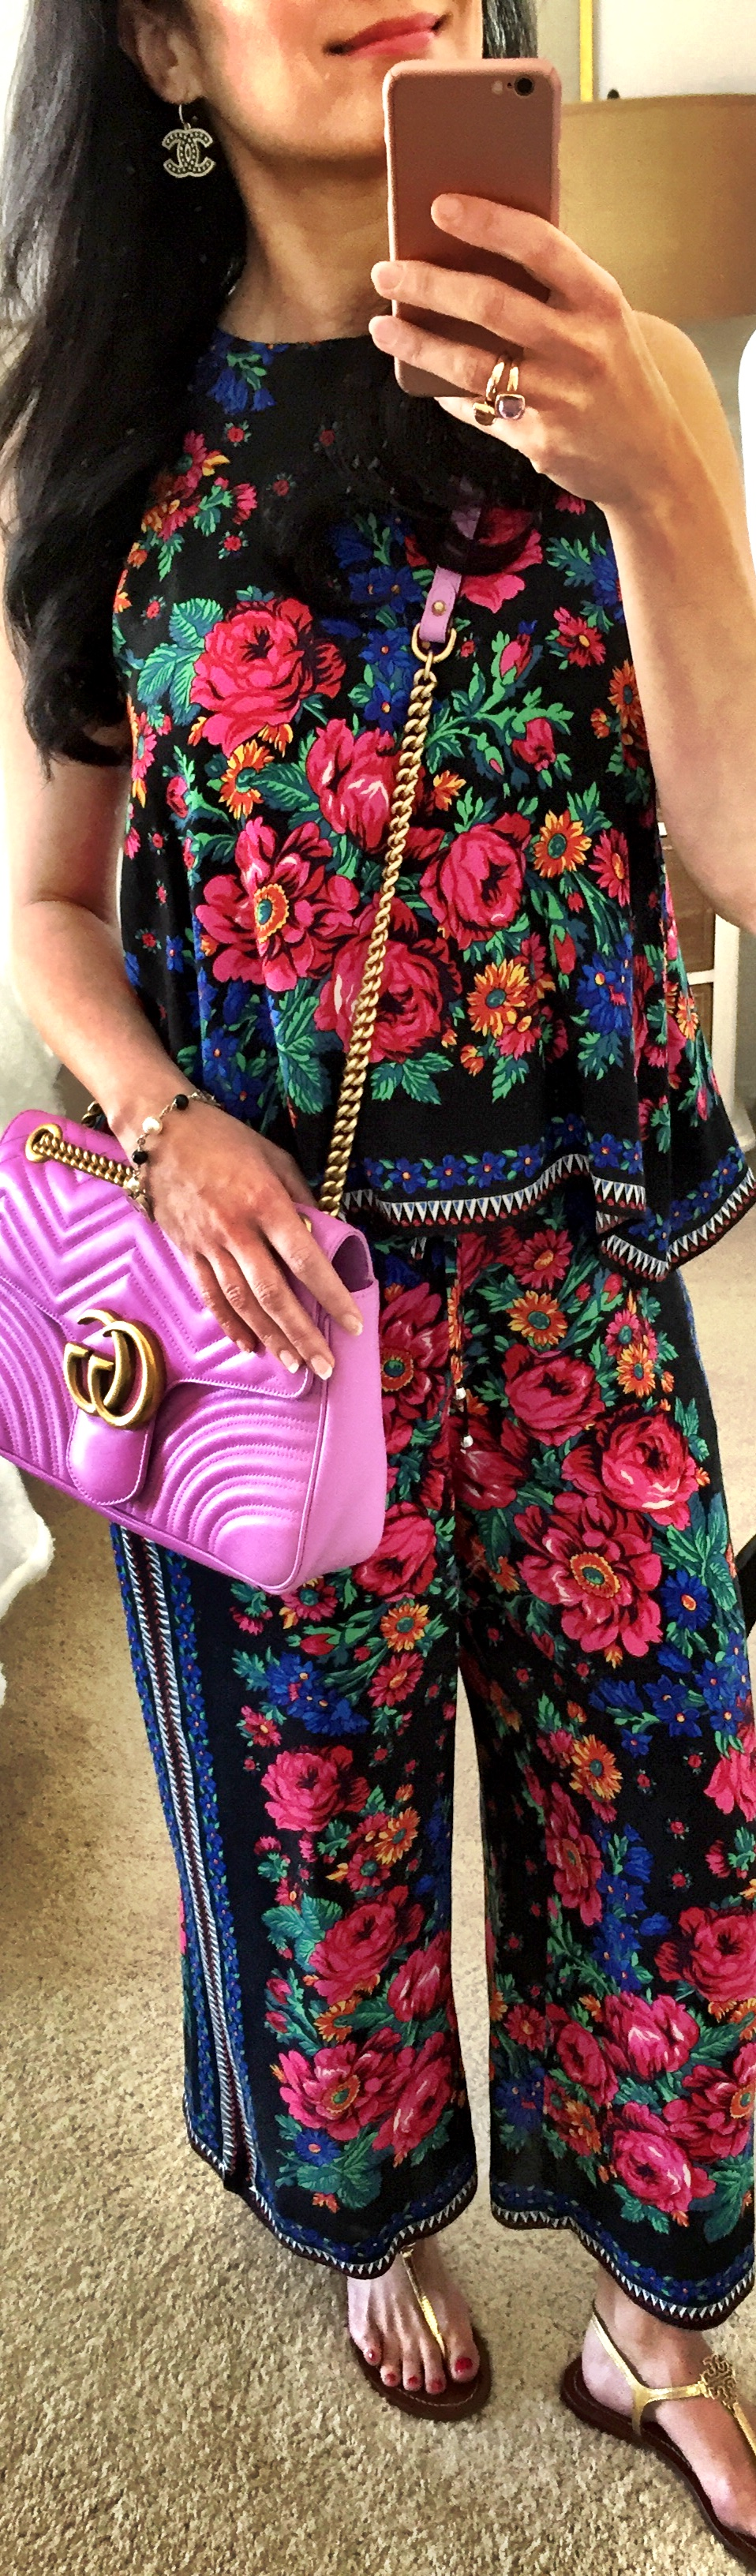 August 15th Floral Culottes and Gucci Marmont bag in pink